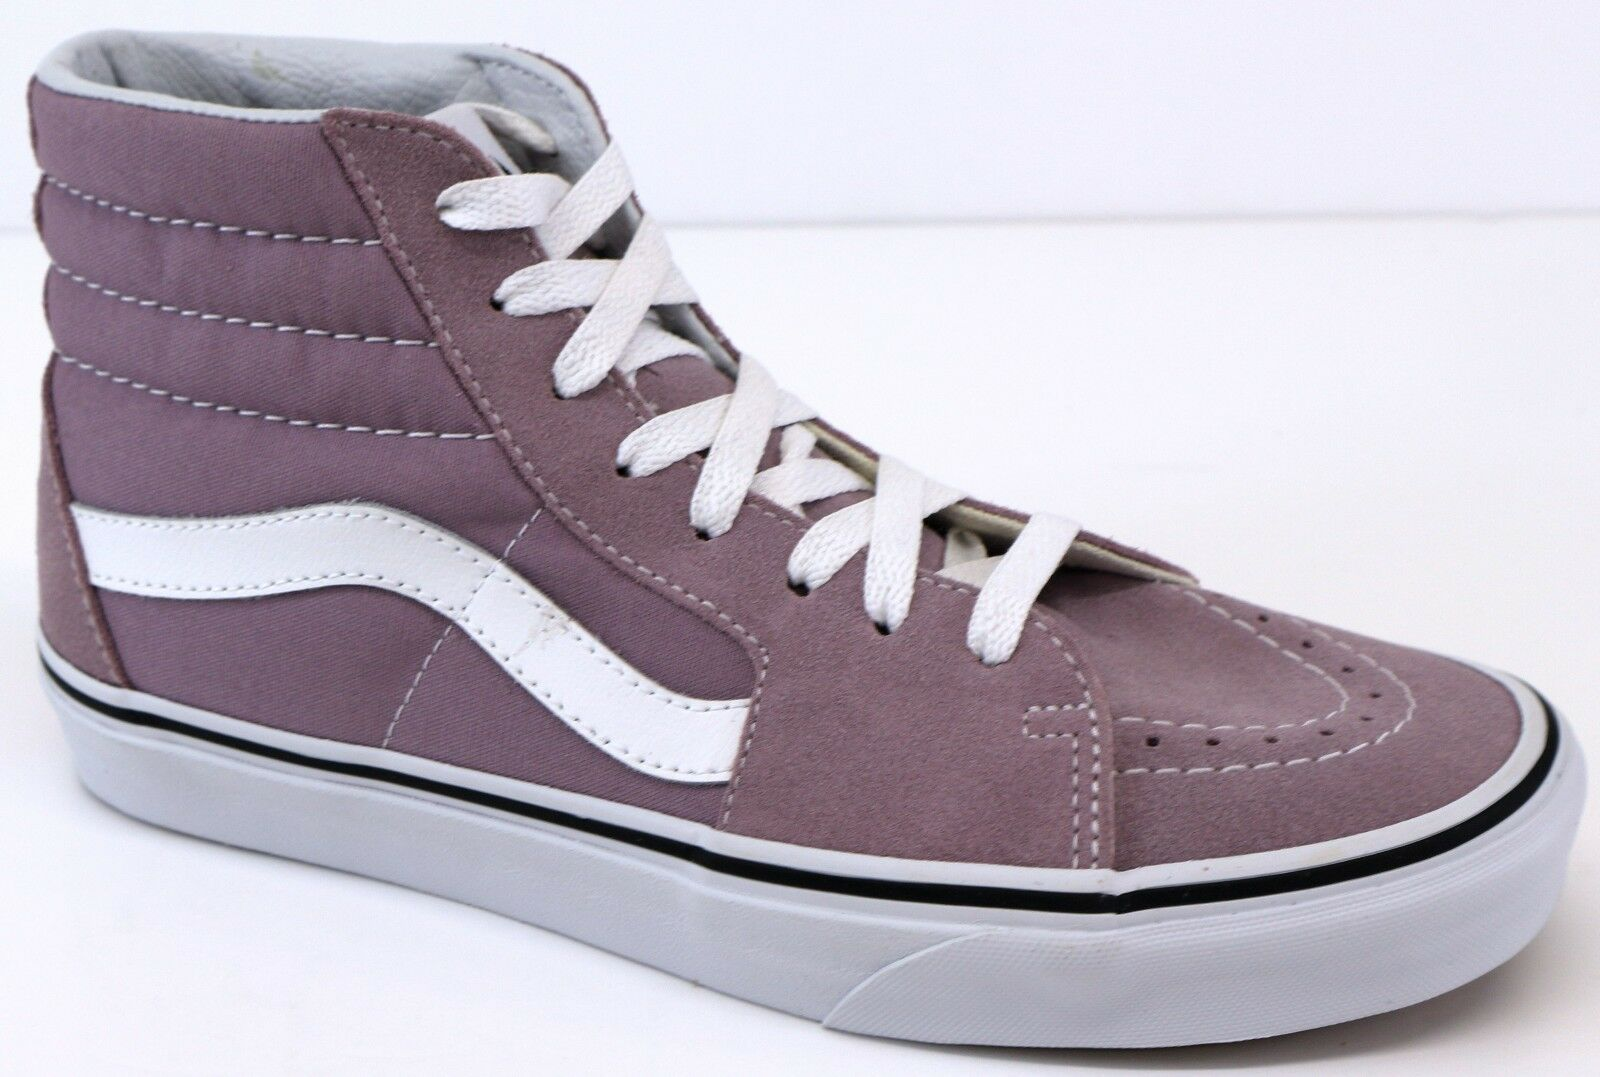 1d574be50eaa VANS Sk8 Hi Sea Fog Pink True White Trainers Shoes UK 4 EUR 36.5 for ...